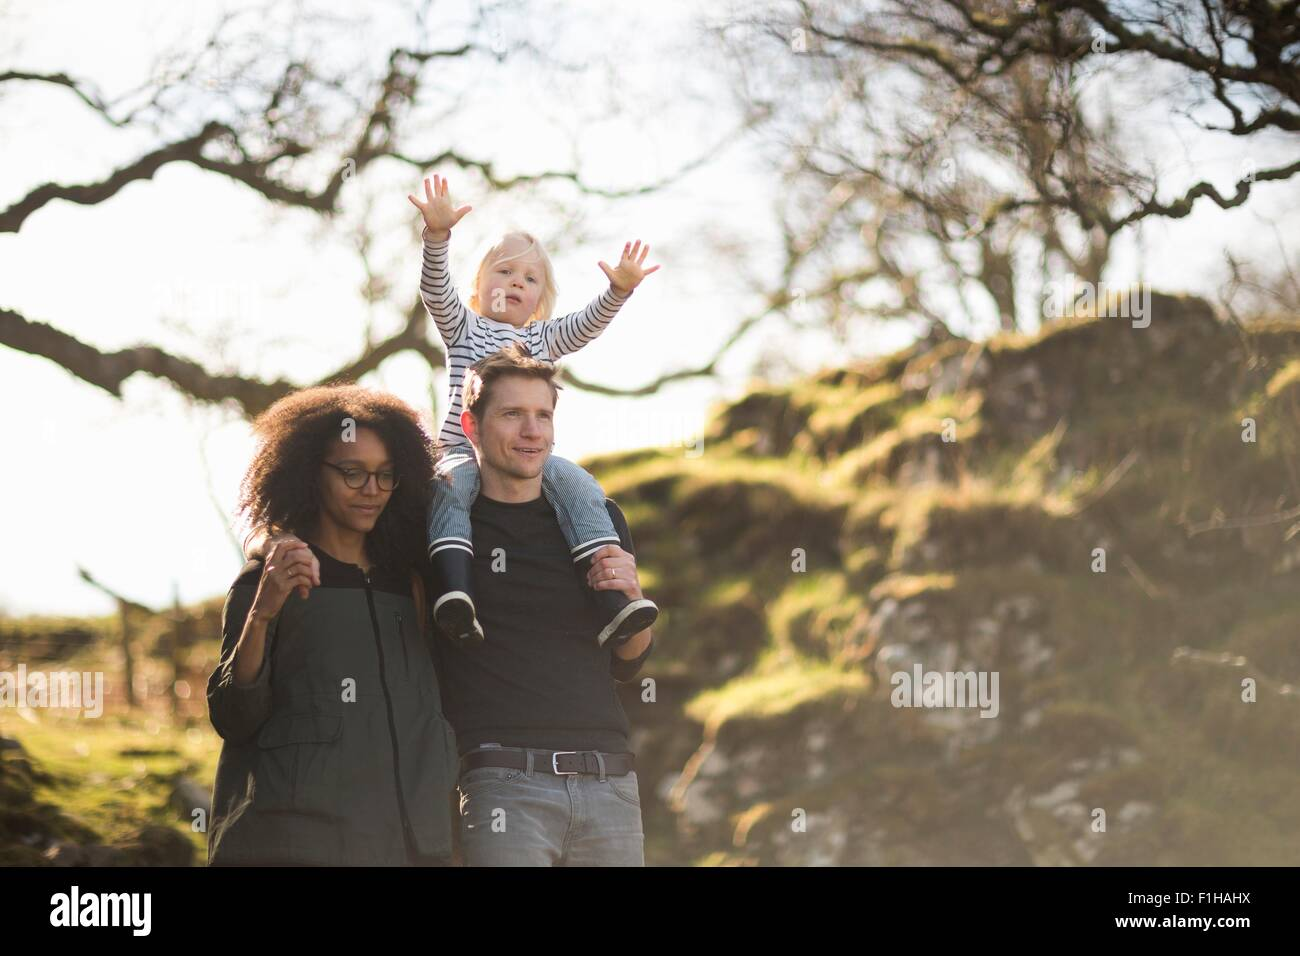 Family on walk, father carrying son on shoulders - Stock Image